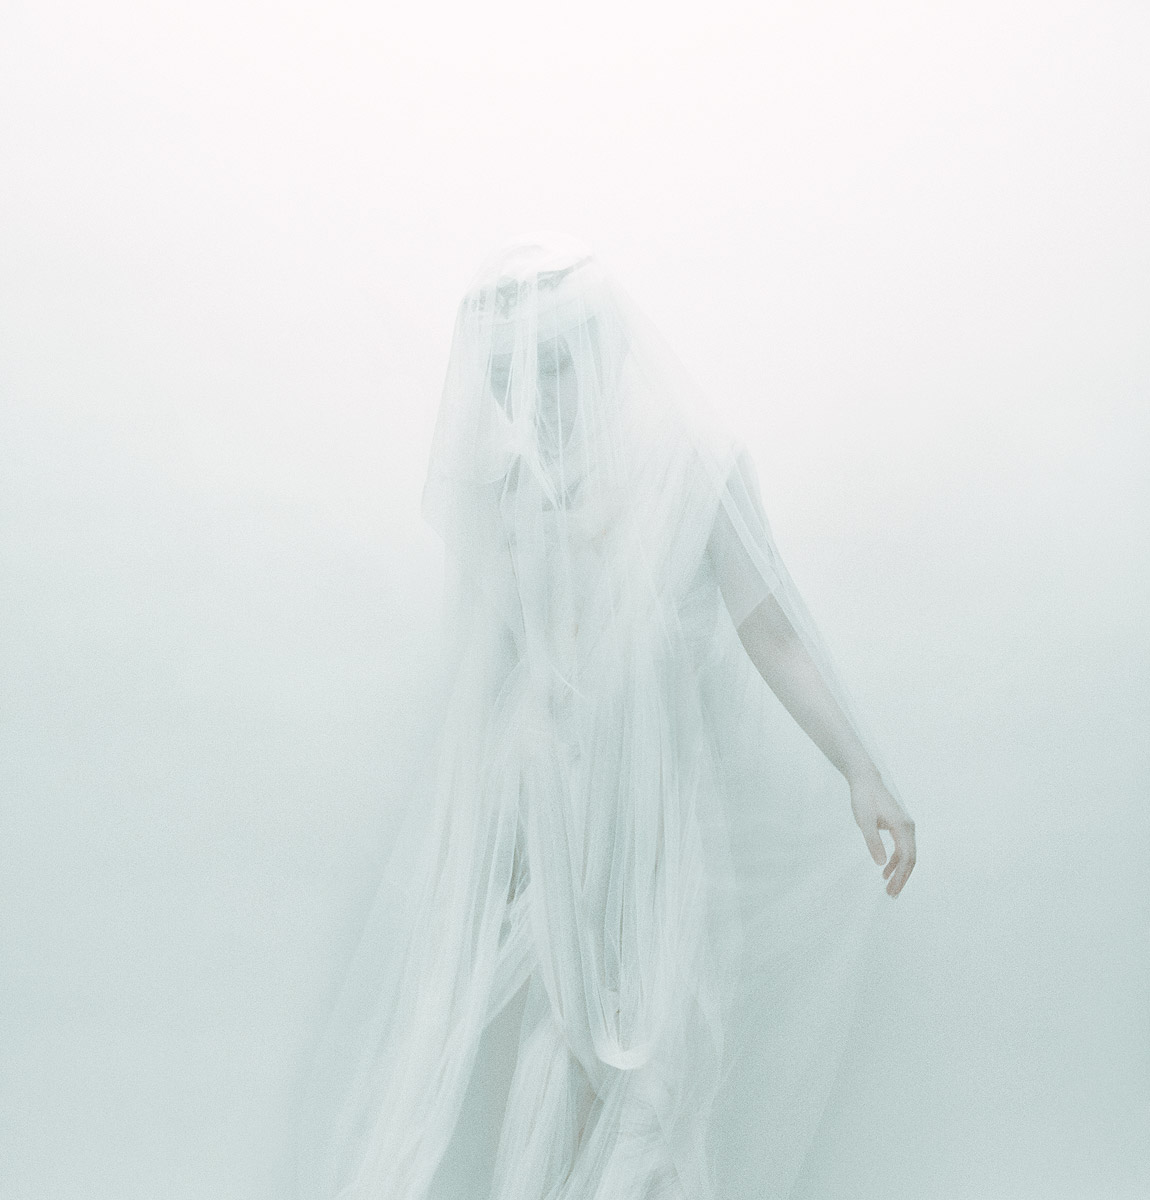 Motherland Chronicles #15 - Ghost , 2013